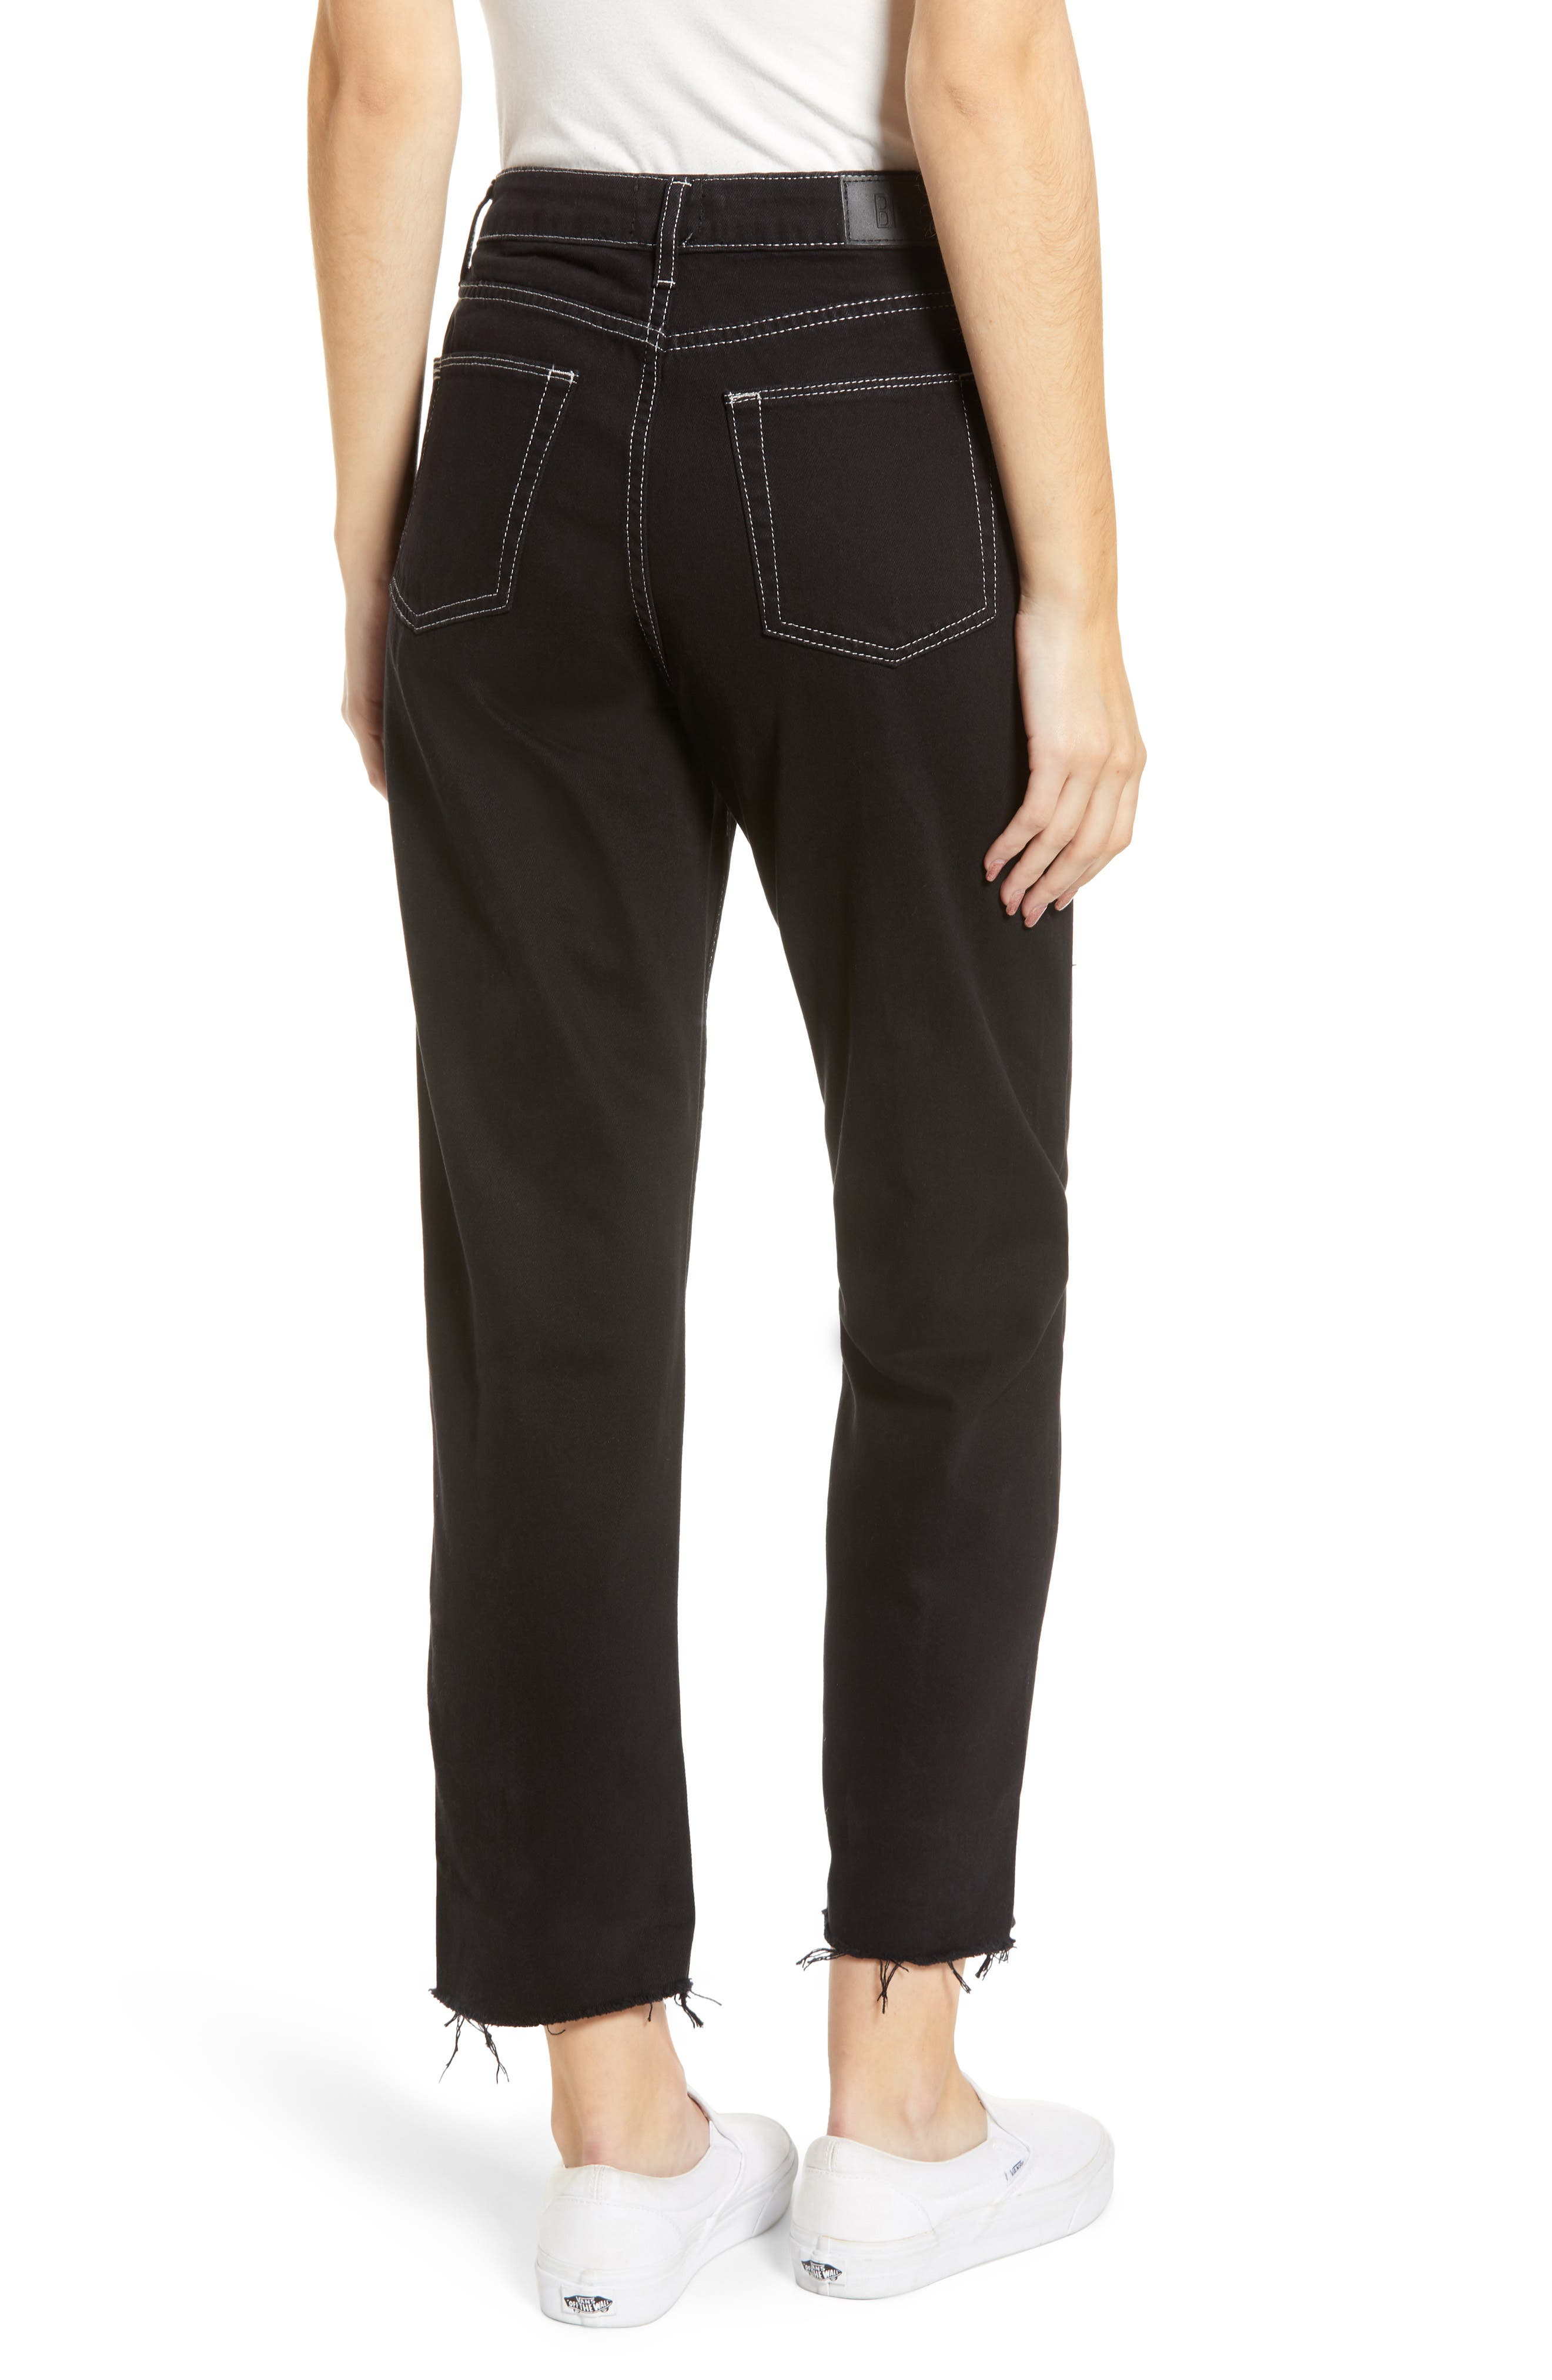 Urban Outfitters Pax High Waist Jeans,                             Alternate thumbnail 2, color,                             BLACK